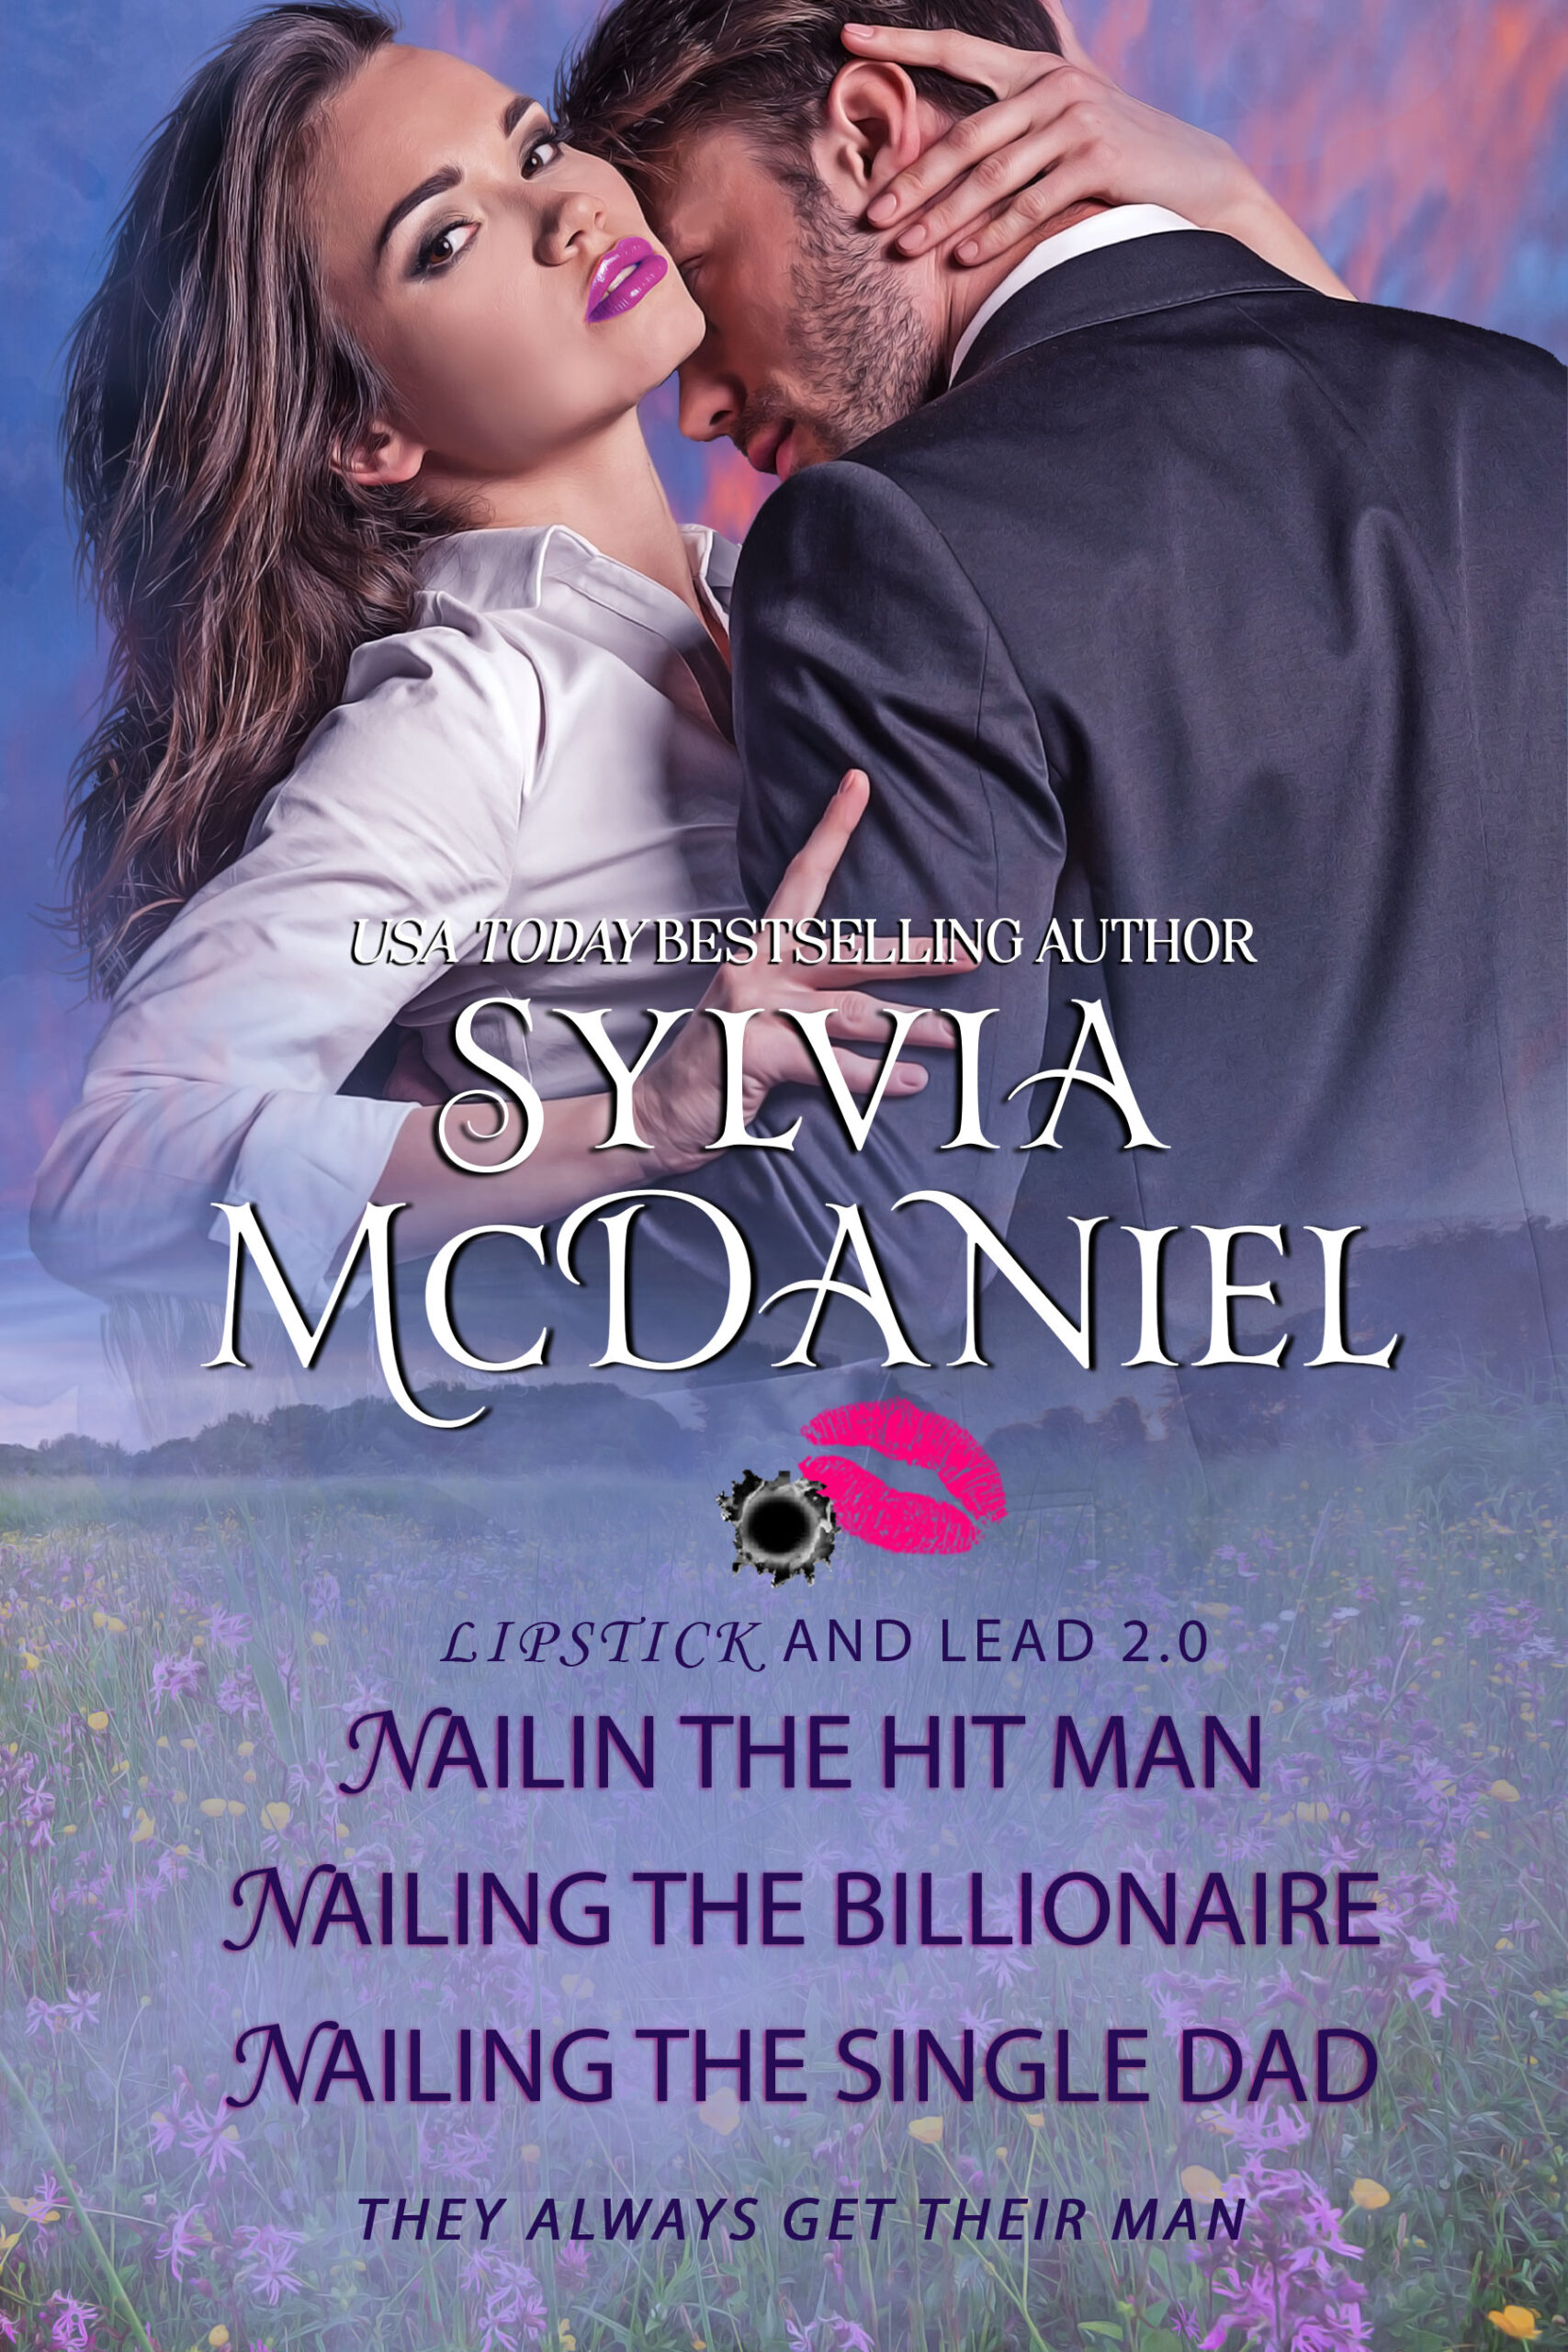 Cover of Lipstick and Lead 2.0 Box Set. Brunette woman in the arms of a handsome man.